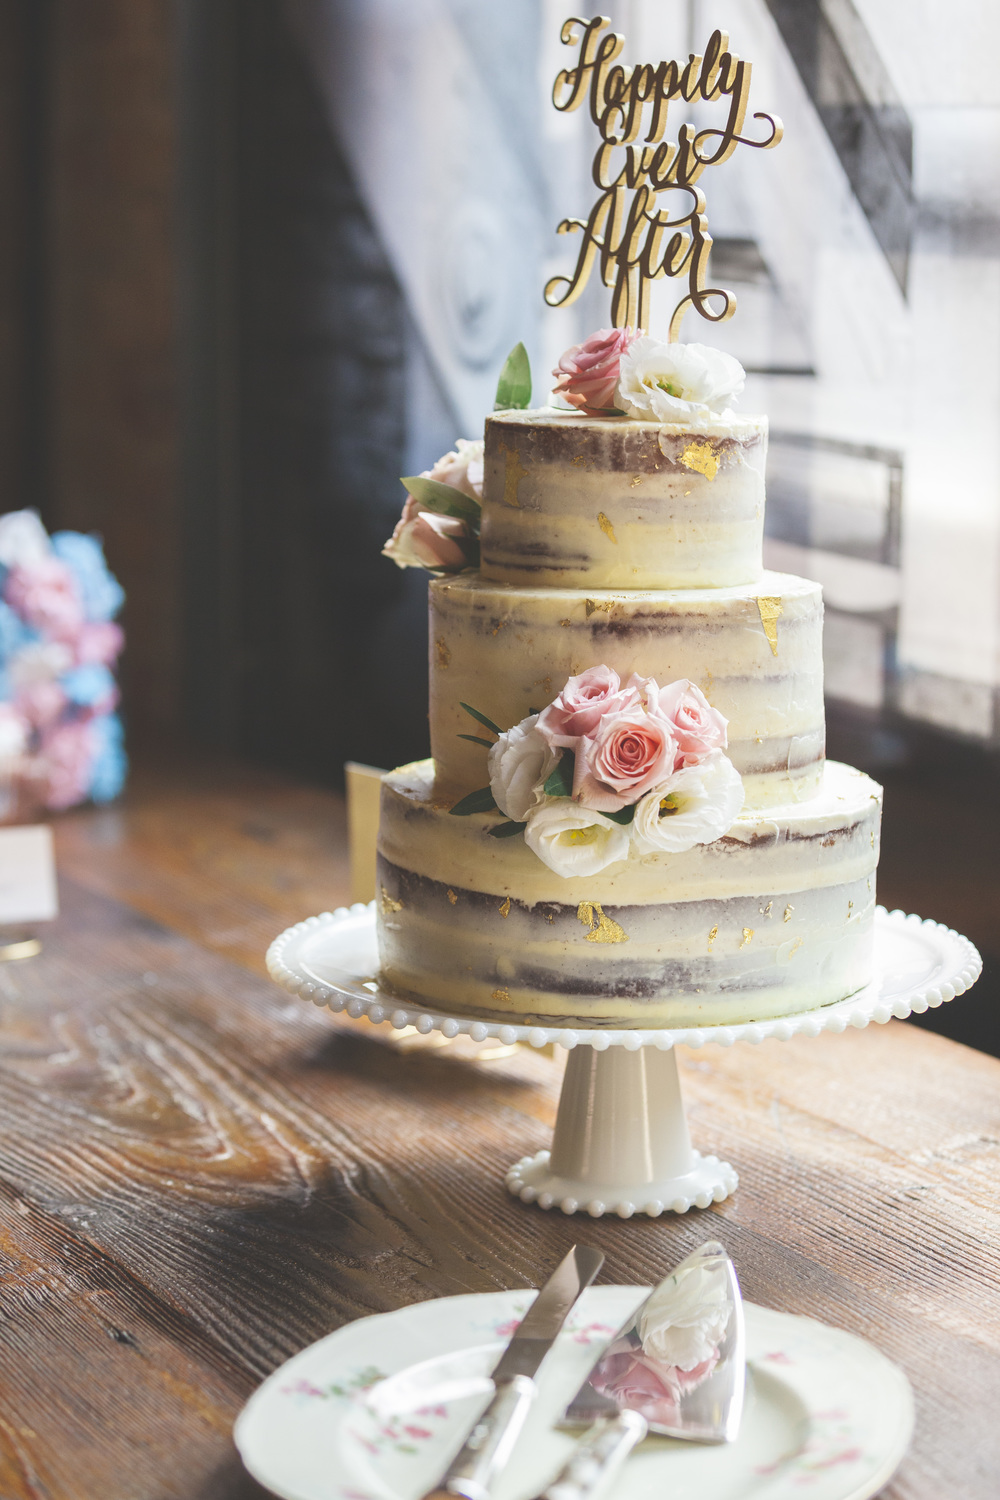 Beautiful wedding cake photography.